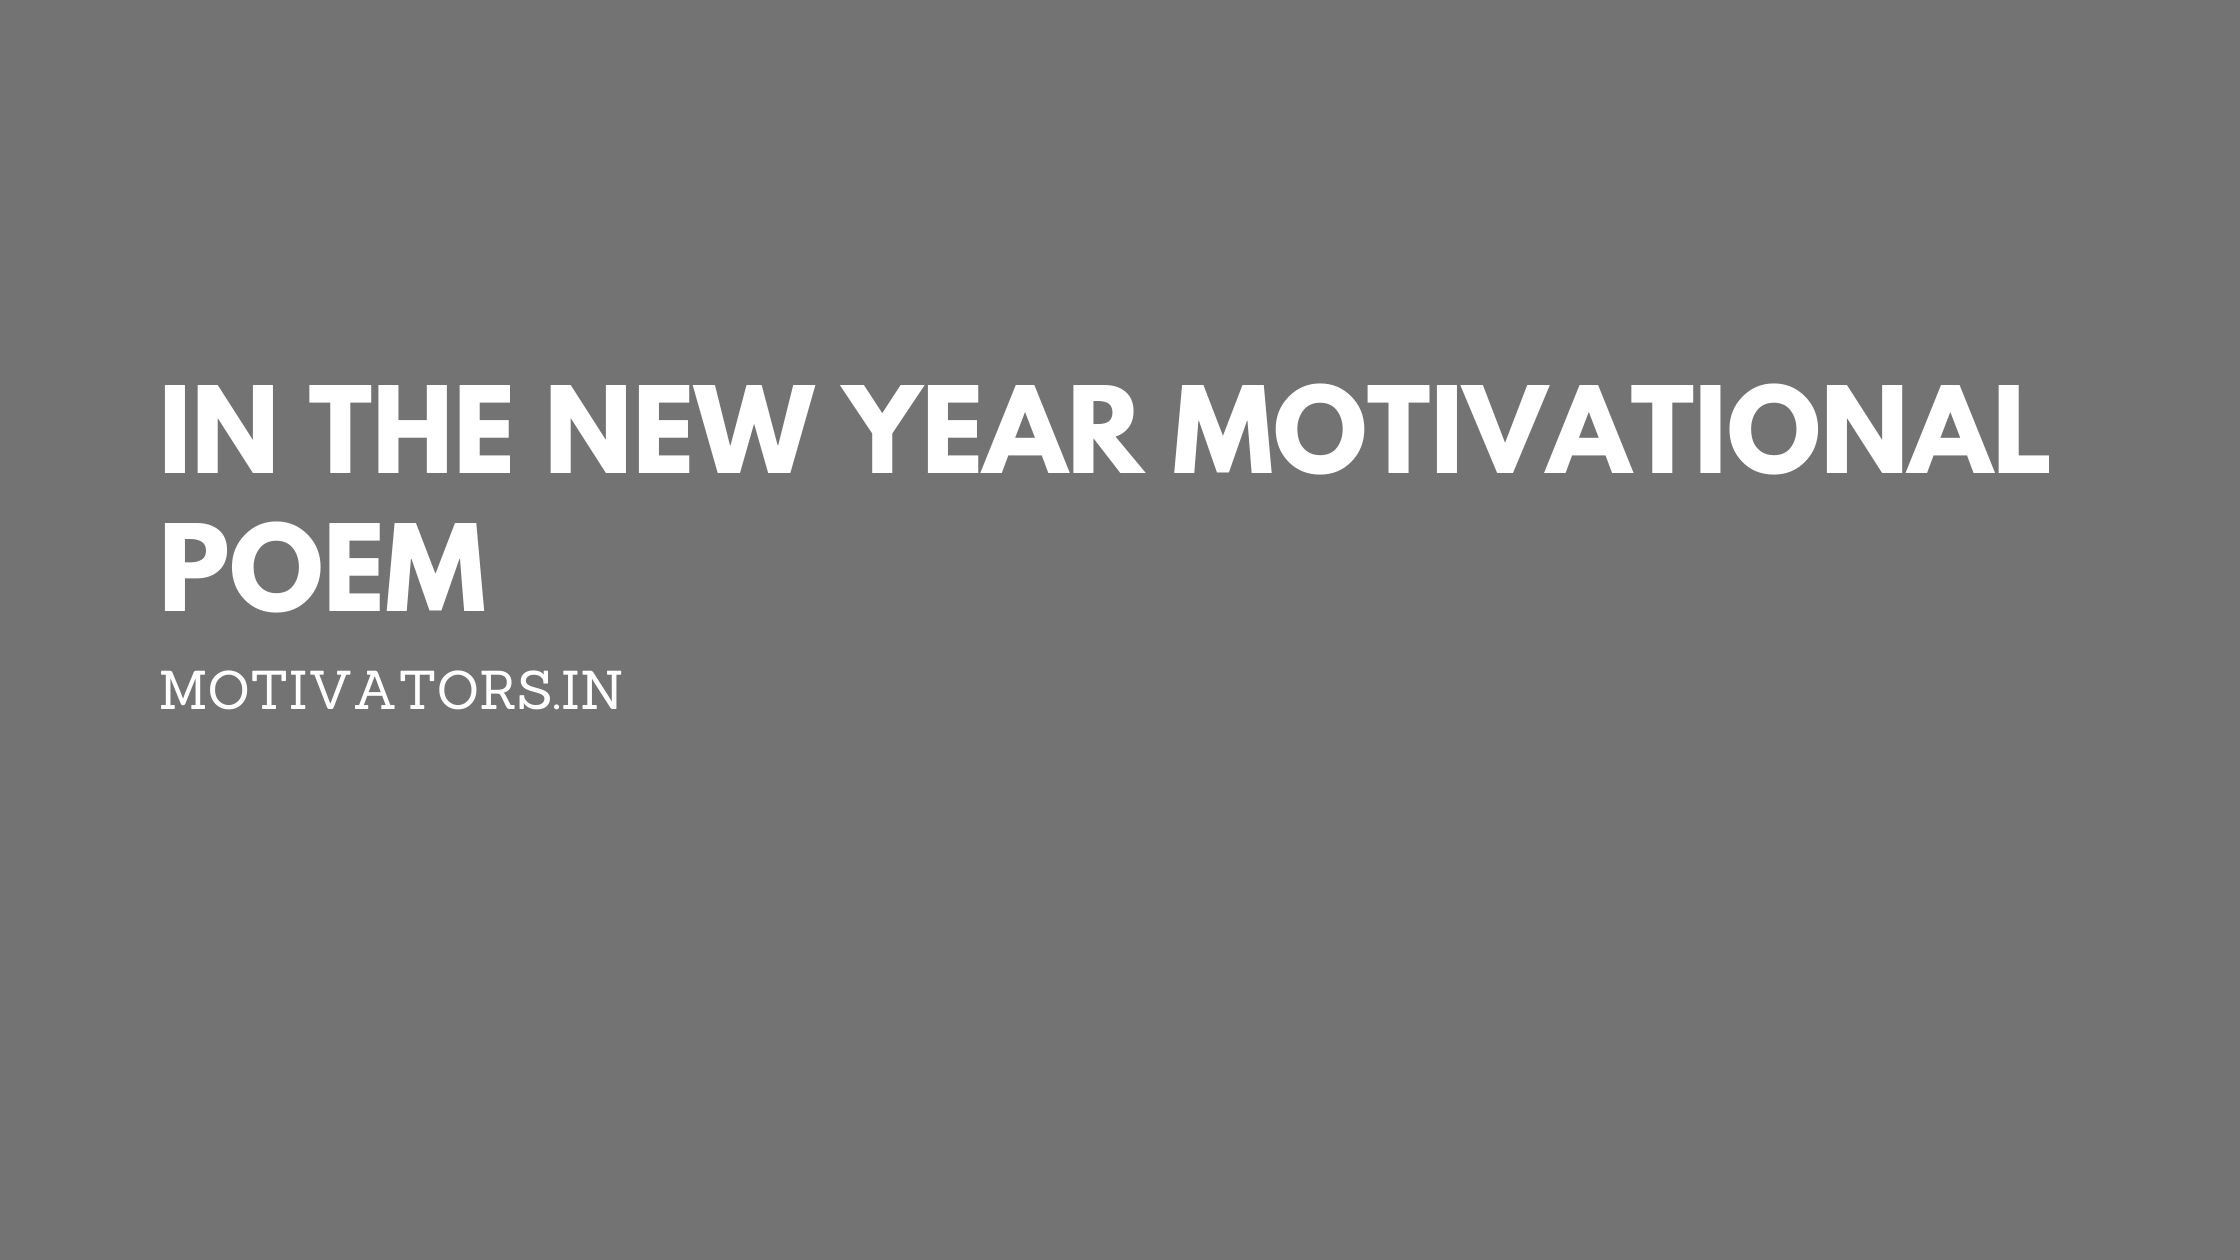 In The New Year Motivational Poem